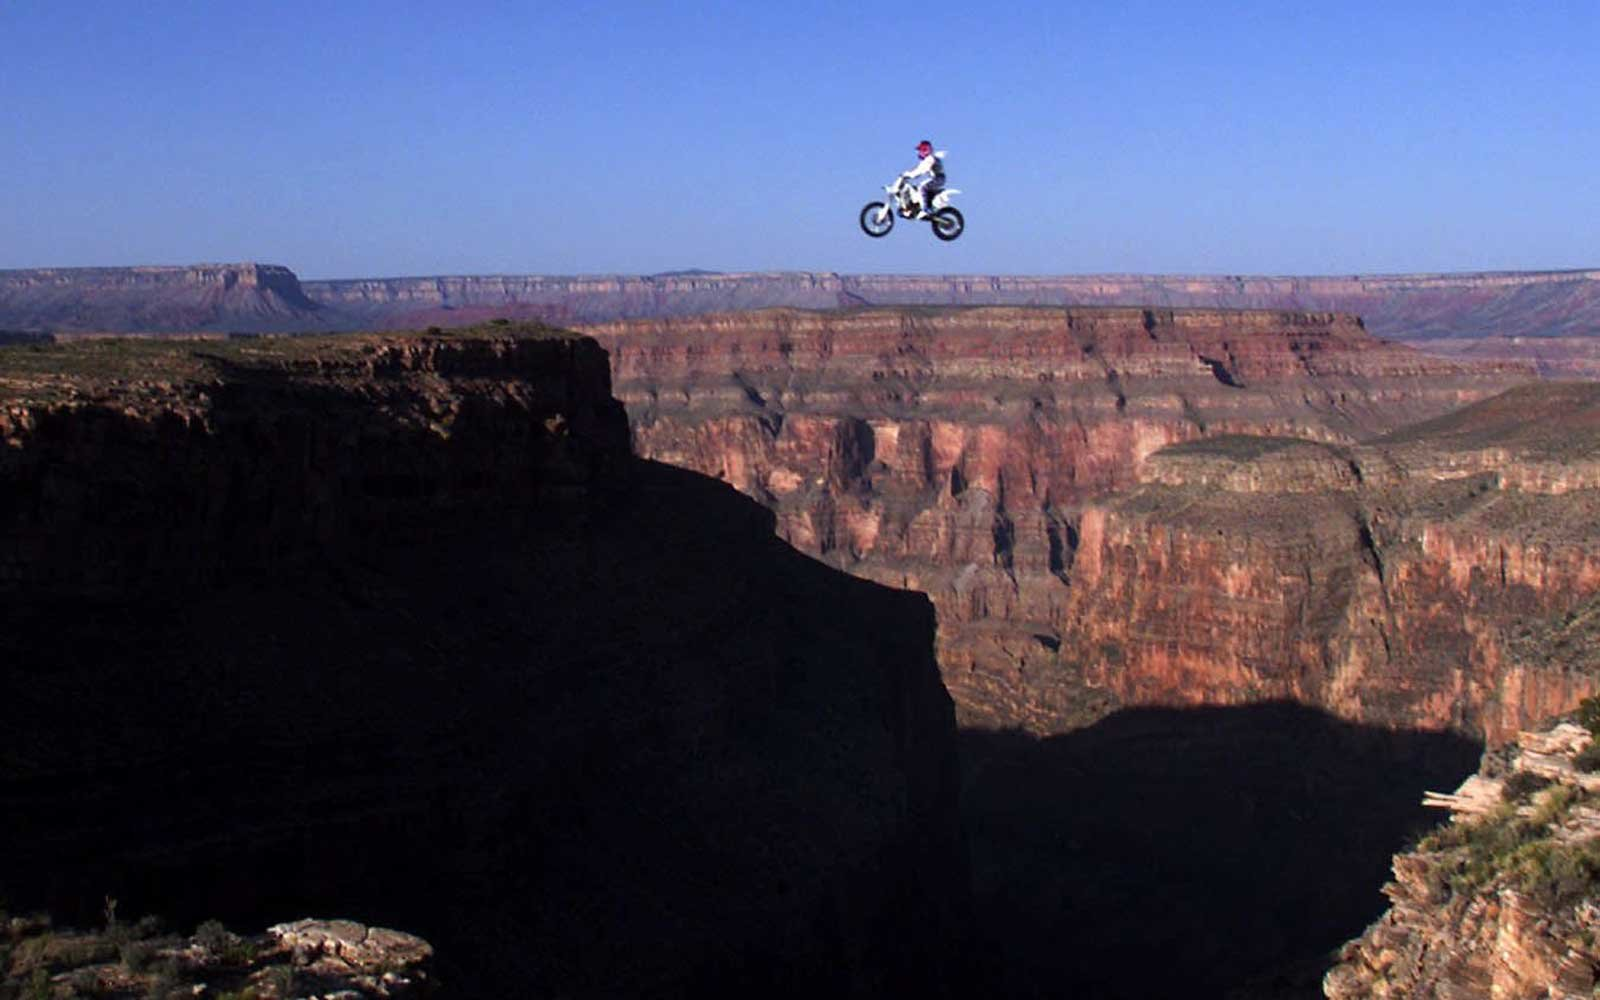 1999: Knievel Feat